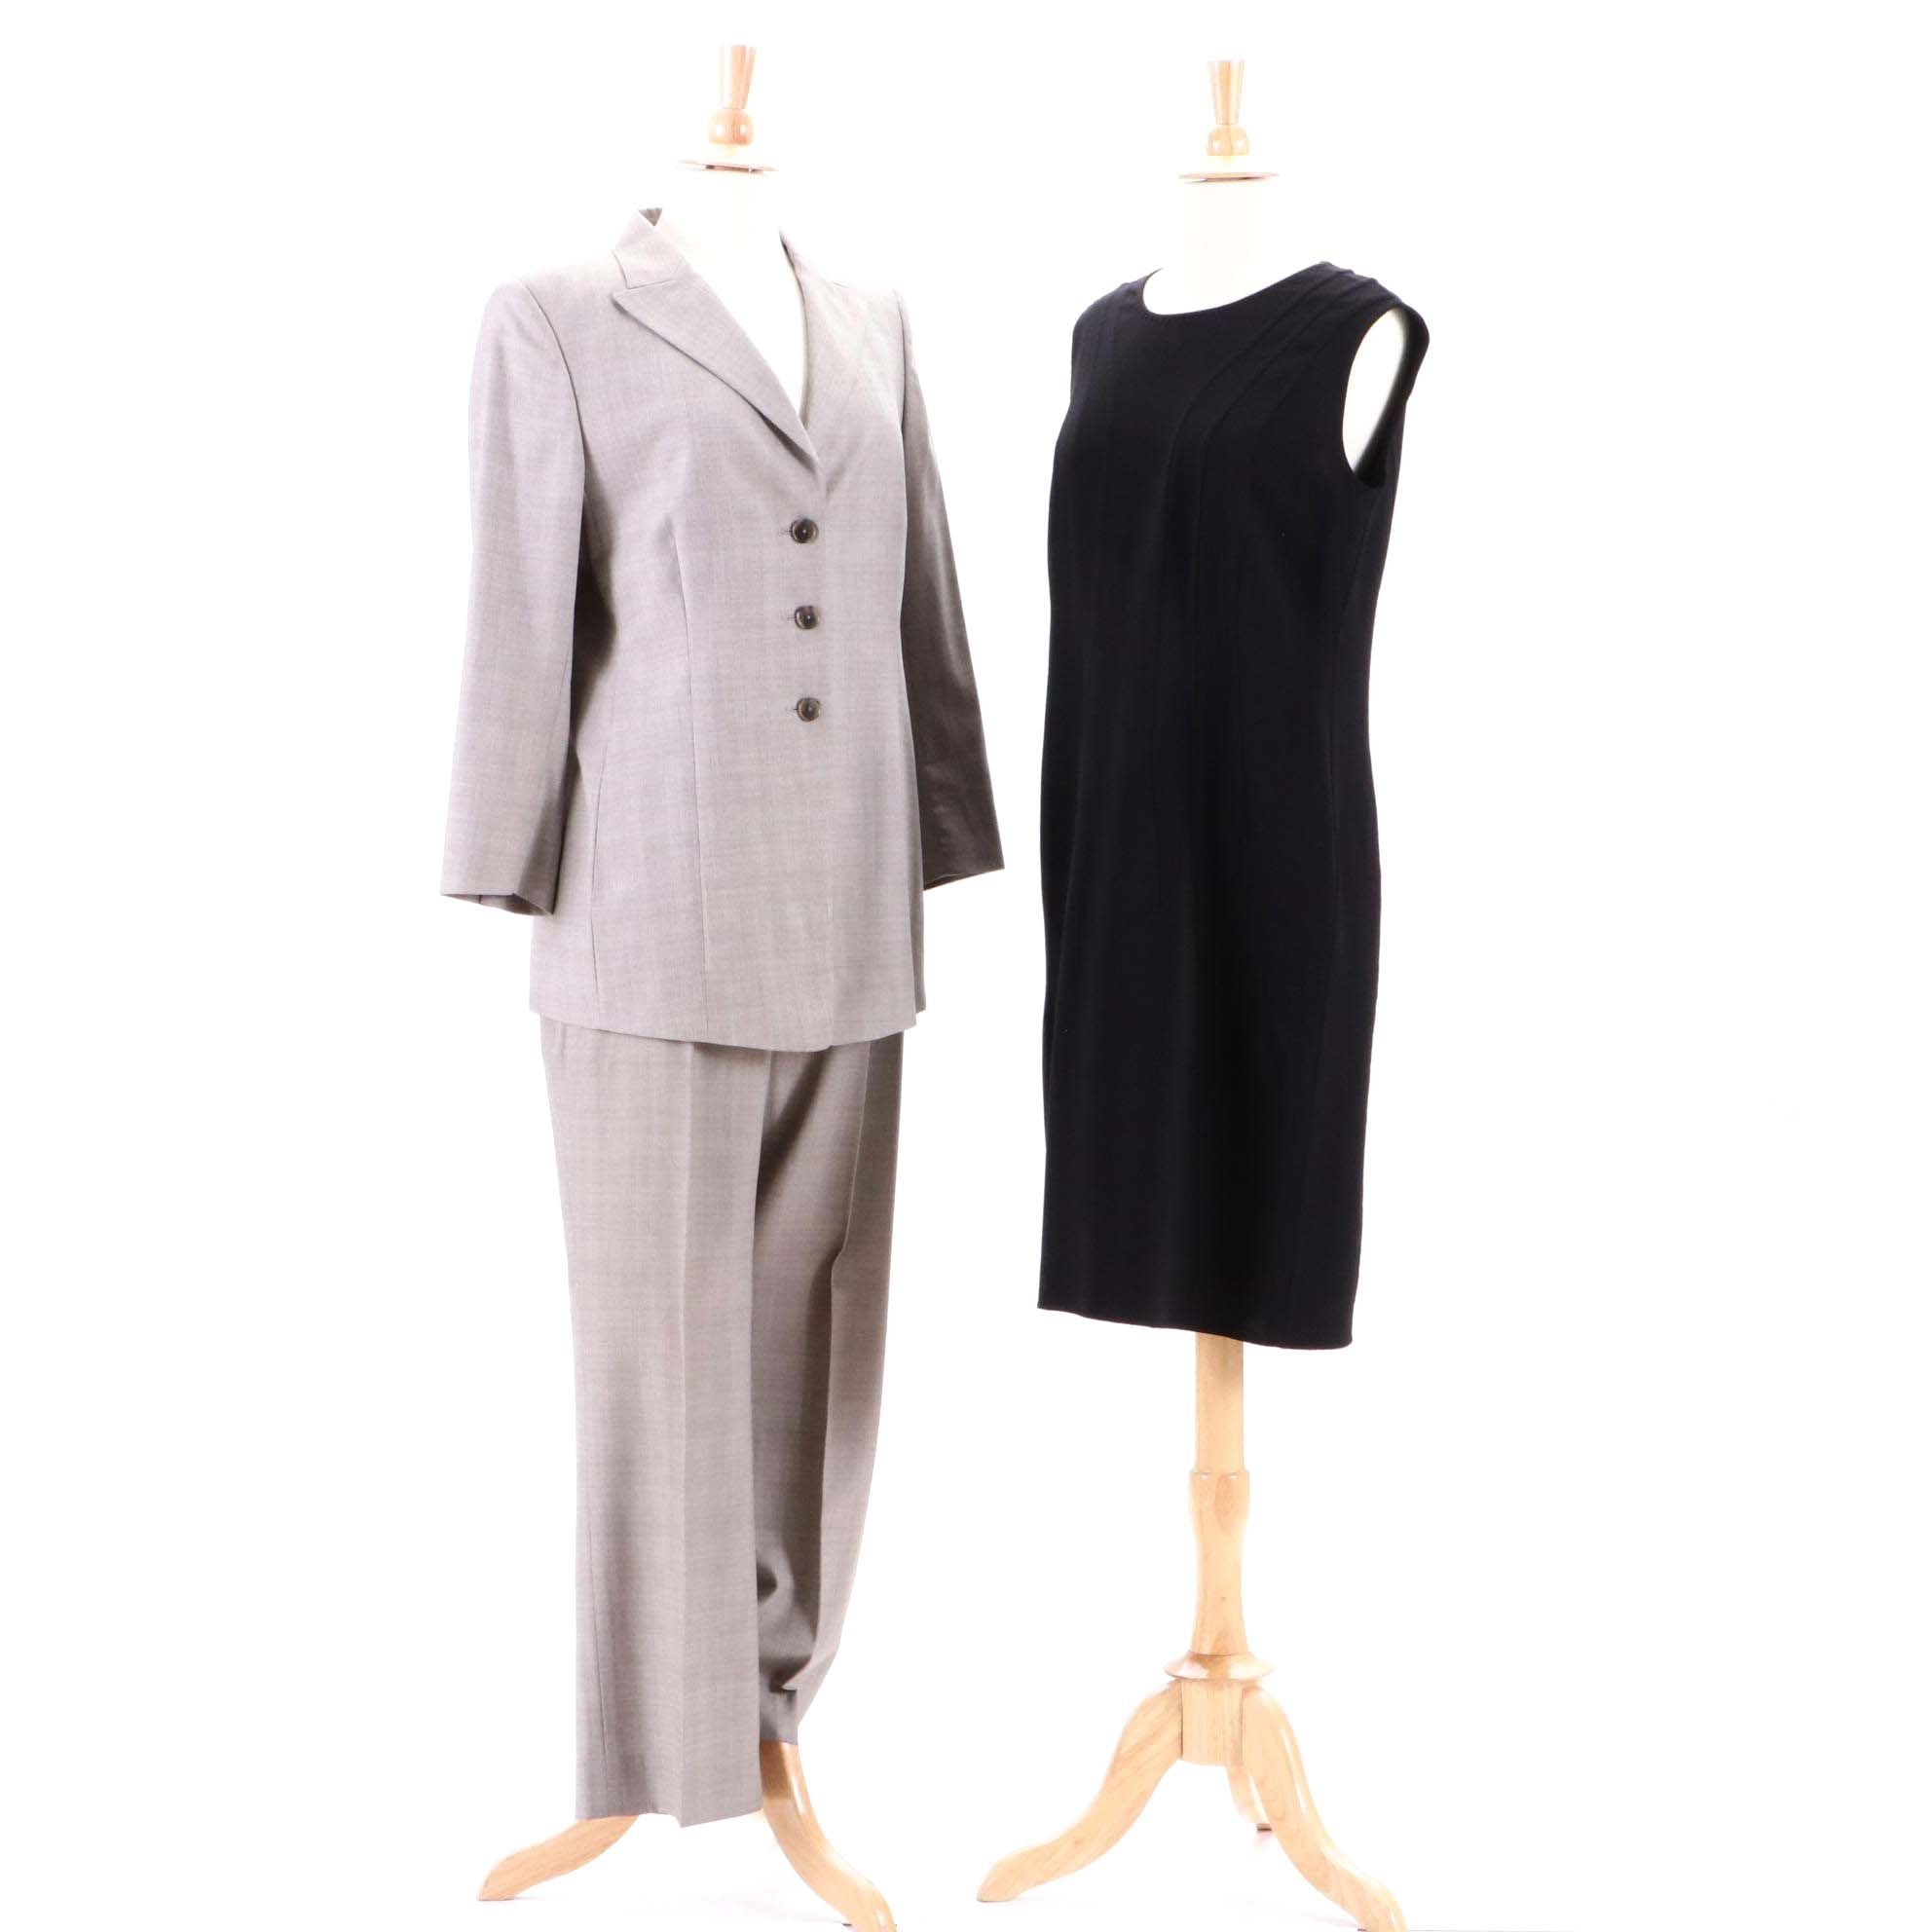 Agnona Wool Blend Sleeveless Black Dress and AKRIS Bergdorf Goodman Pantsuit